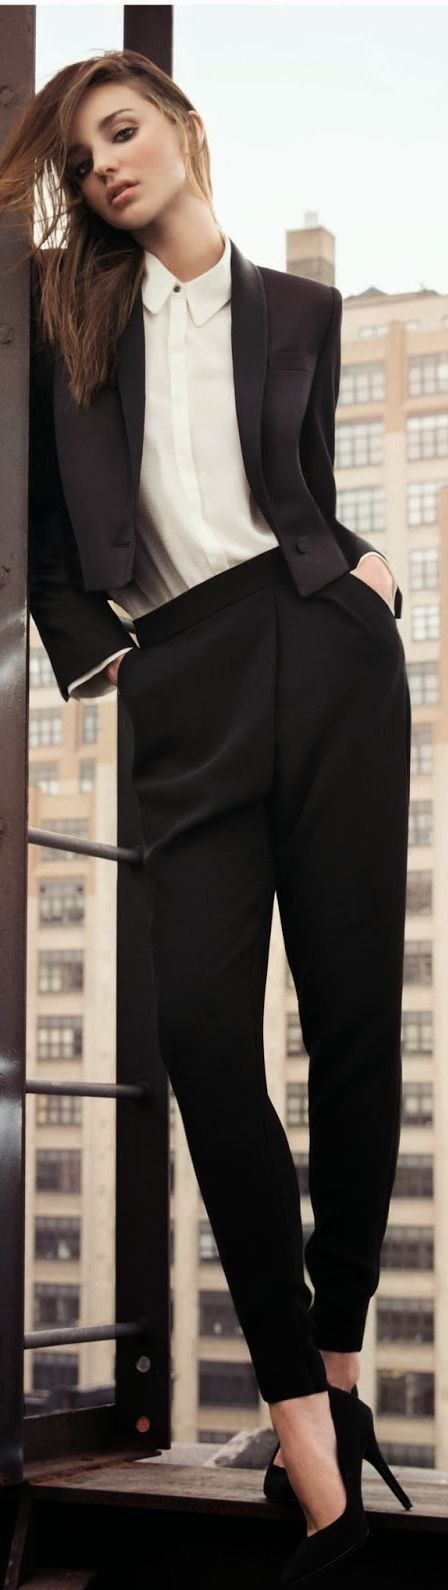 2f16fb86c2a8 ... Summer - office wear - formal wear - party style - work outfit -  business casual - black shawl collar cropped blazer + black pleated pants +  white shirt ...